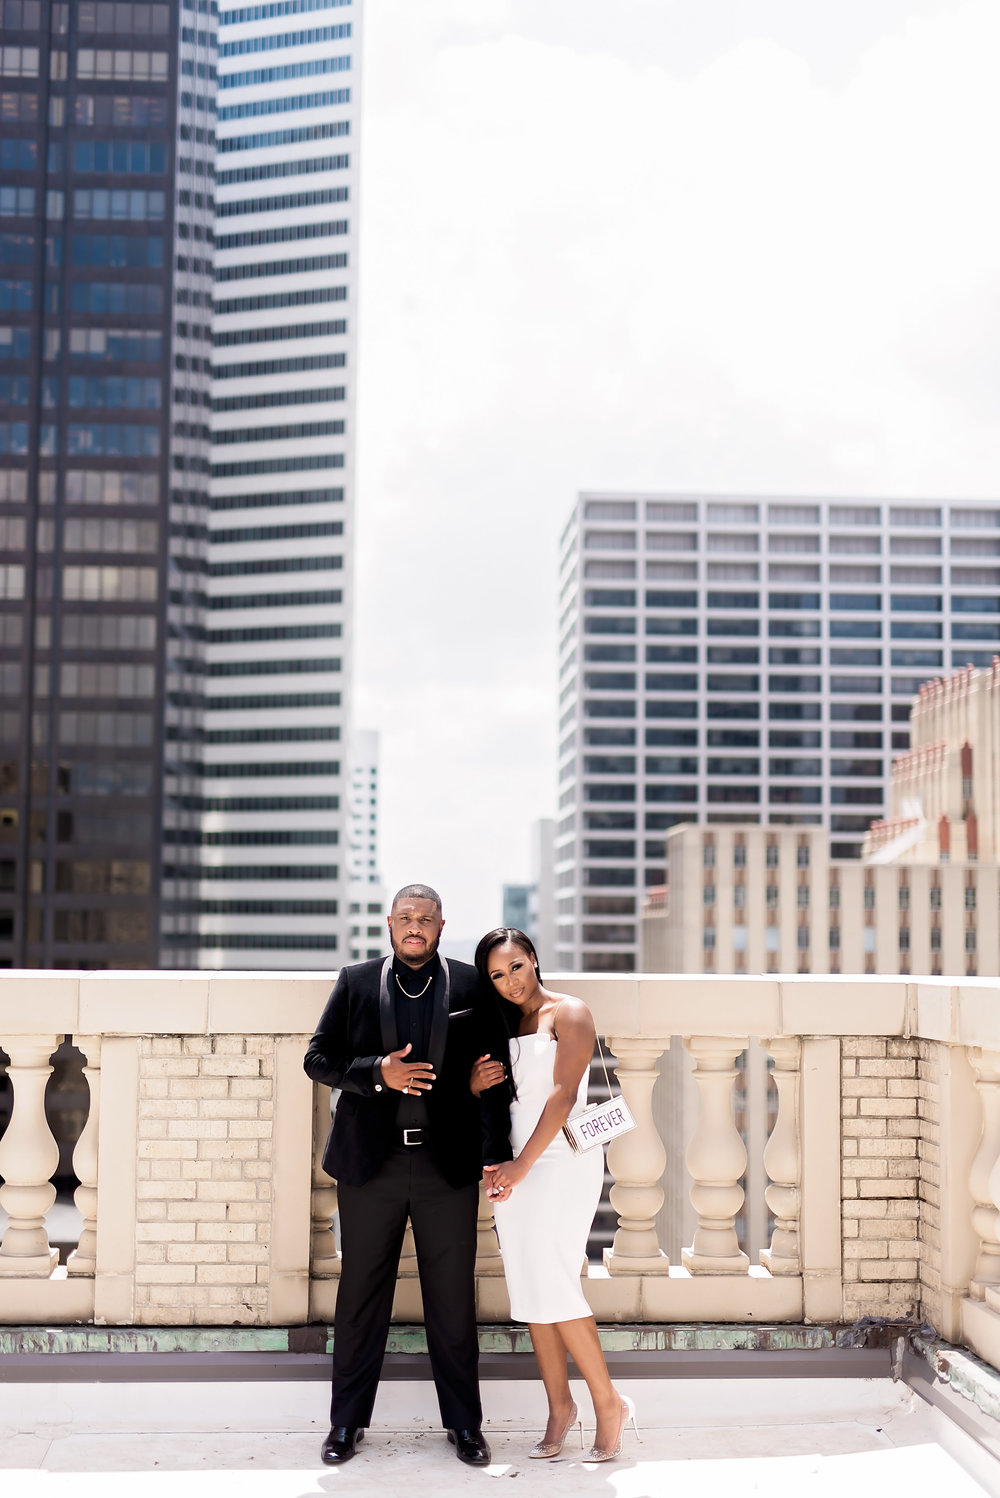 Ashley-Reggie-Engagement-Pharris-Photography-0002.jpg